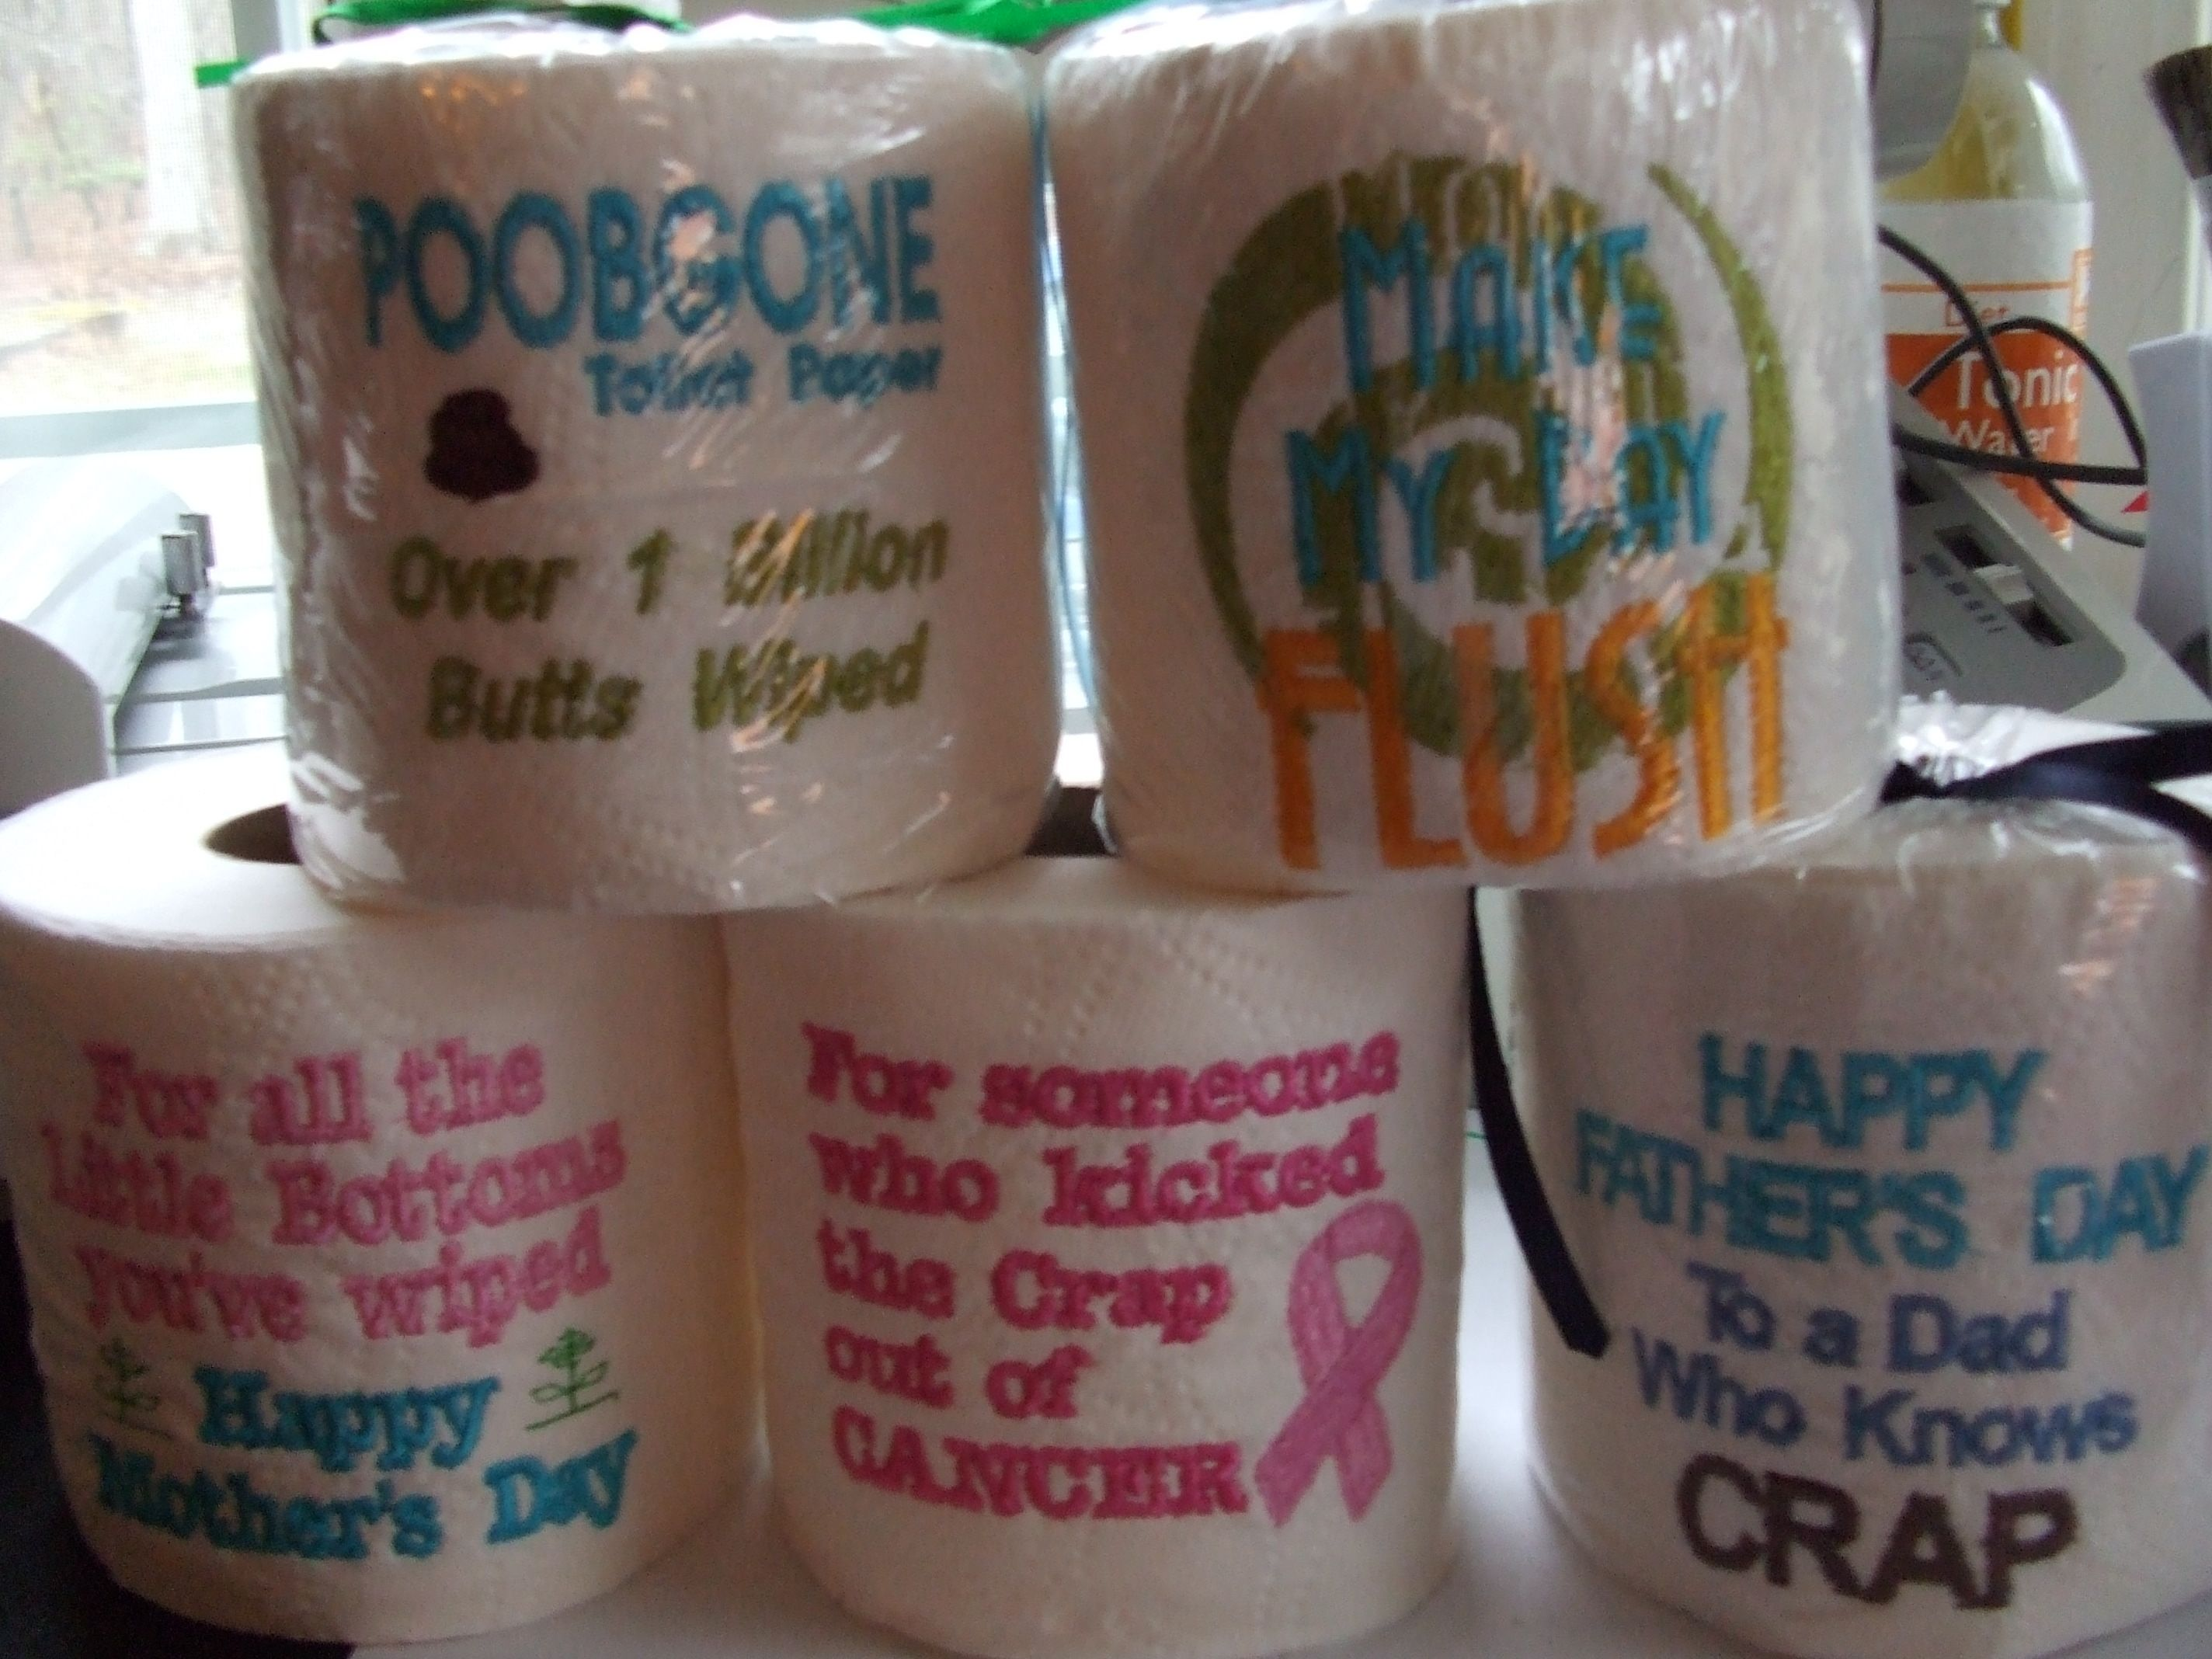 Embroidery Designs For Toilet Paper - My newly embroidered toilet paper rolls